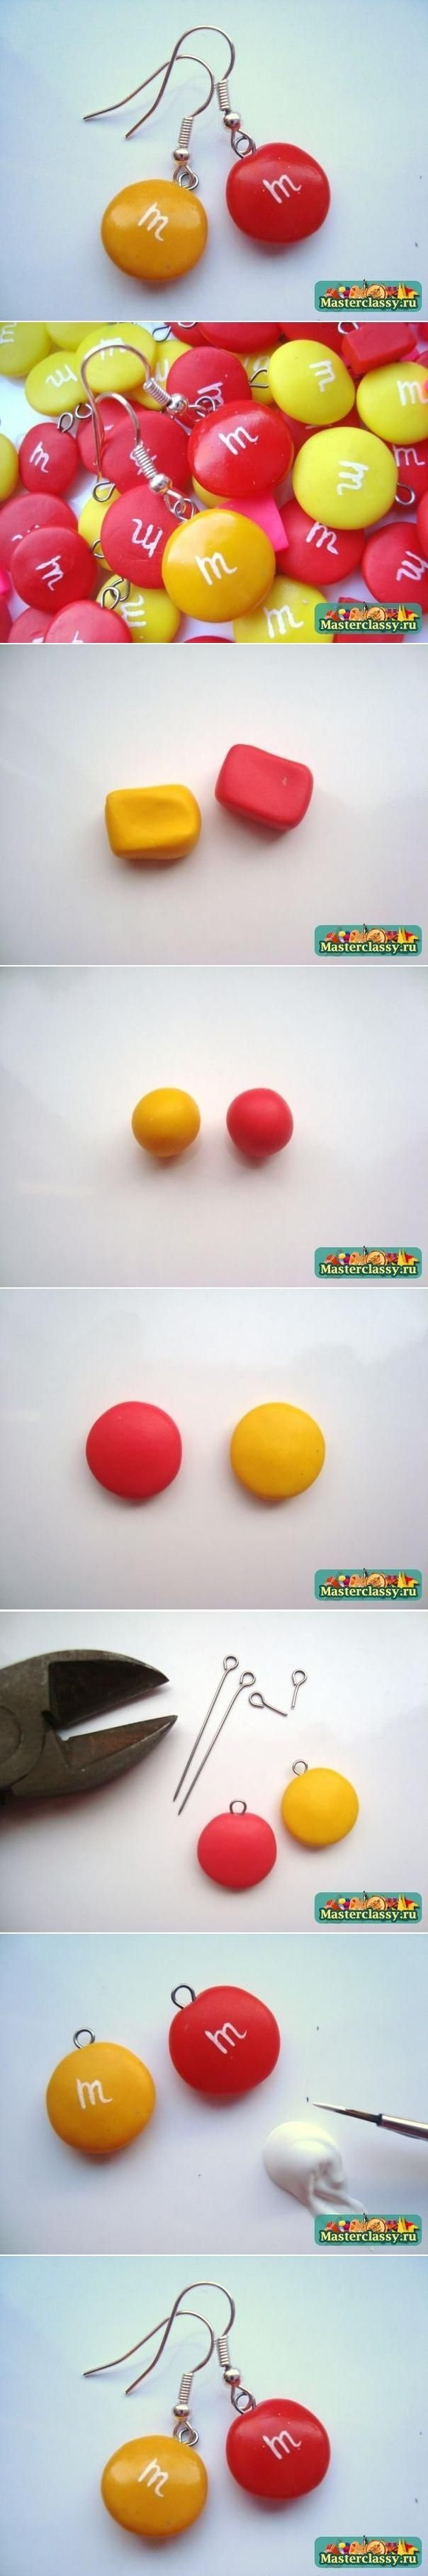 How To Make M And M Earrings diy crafts how to tutorial jewelry crafts teen crafts crafts for teens